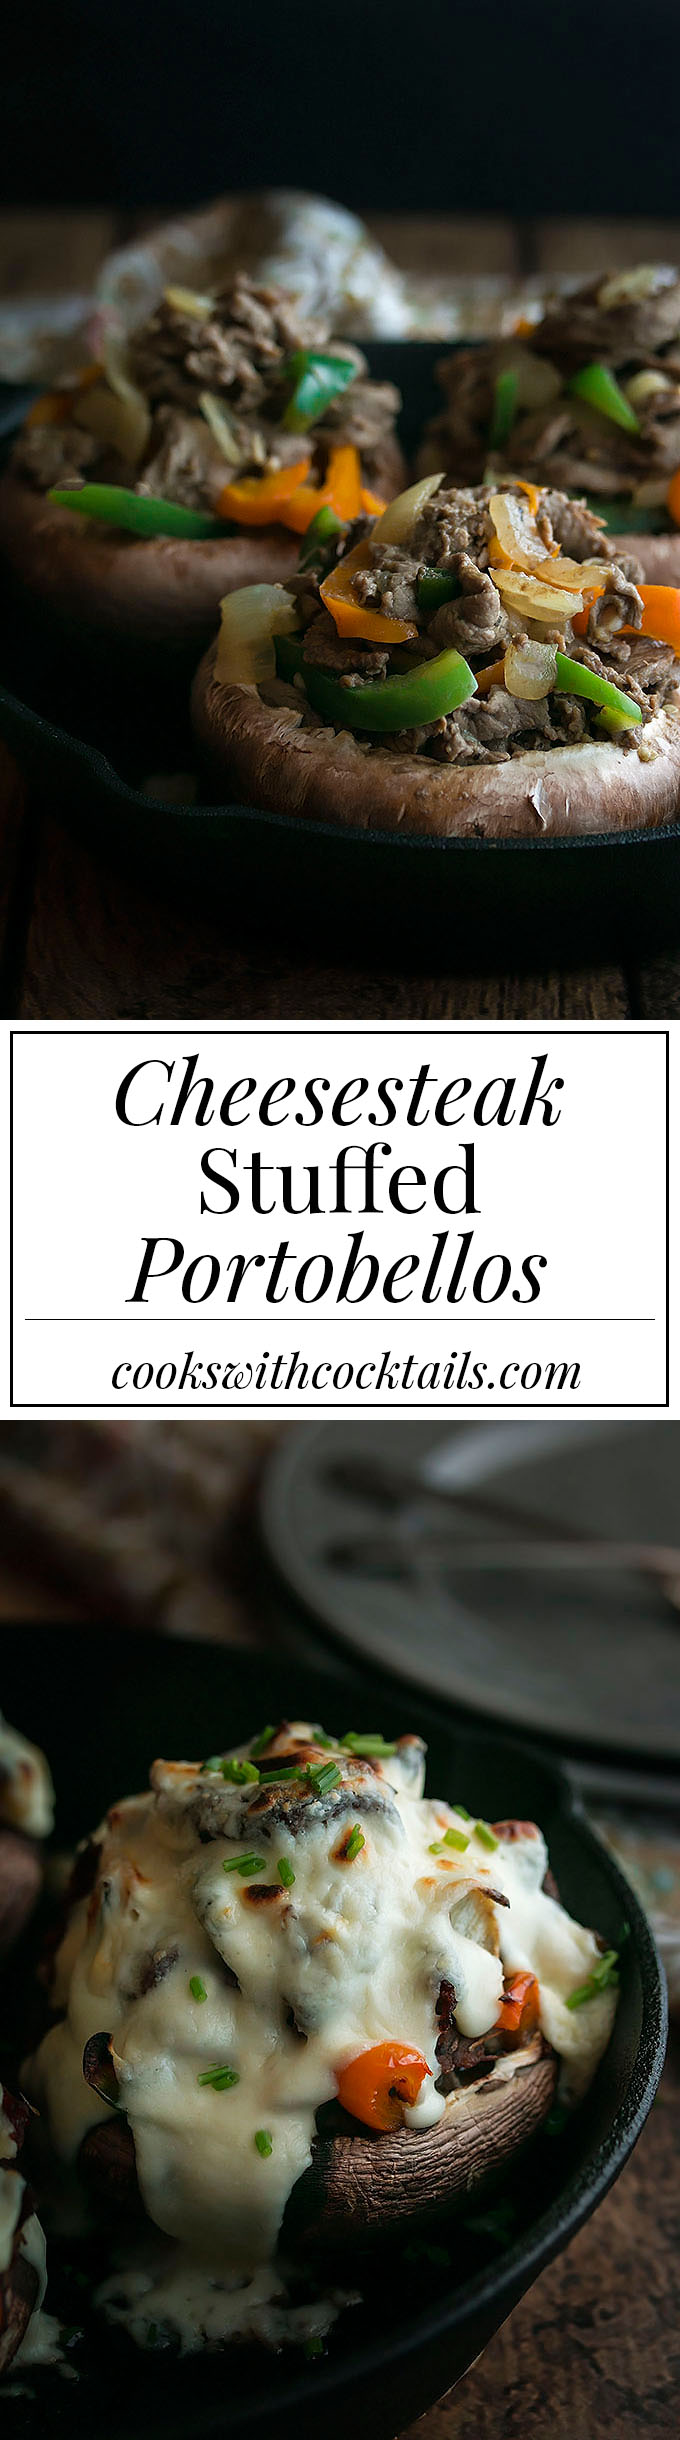 Cheesesteak Stuffed Portobellos